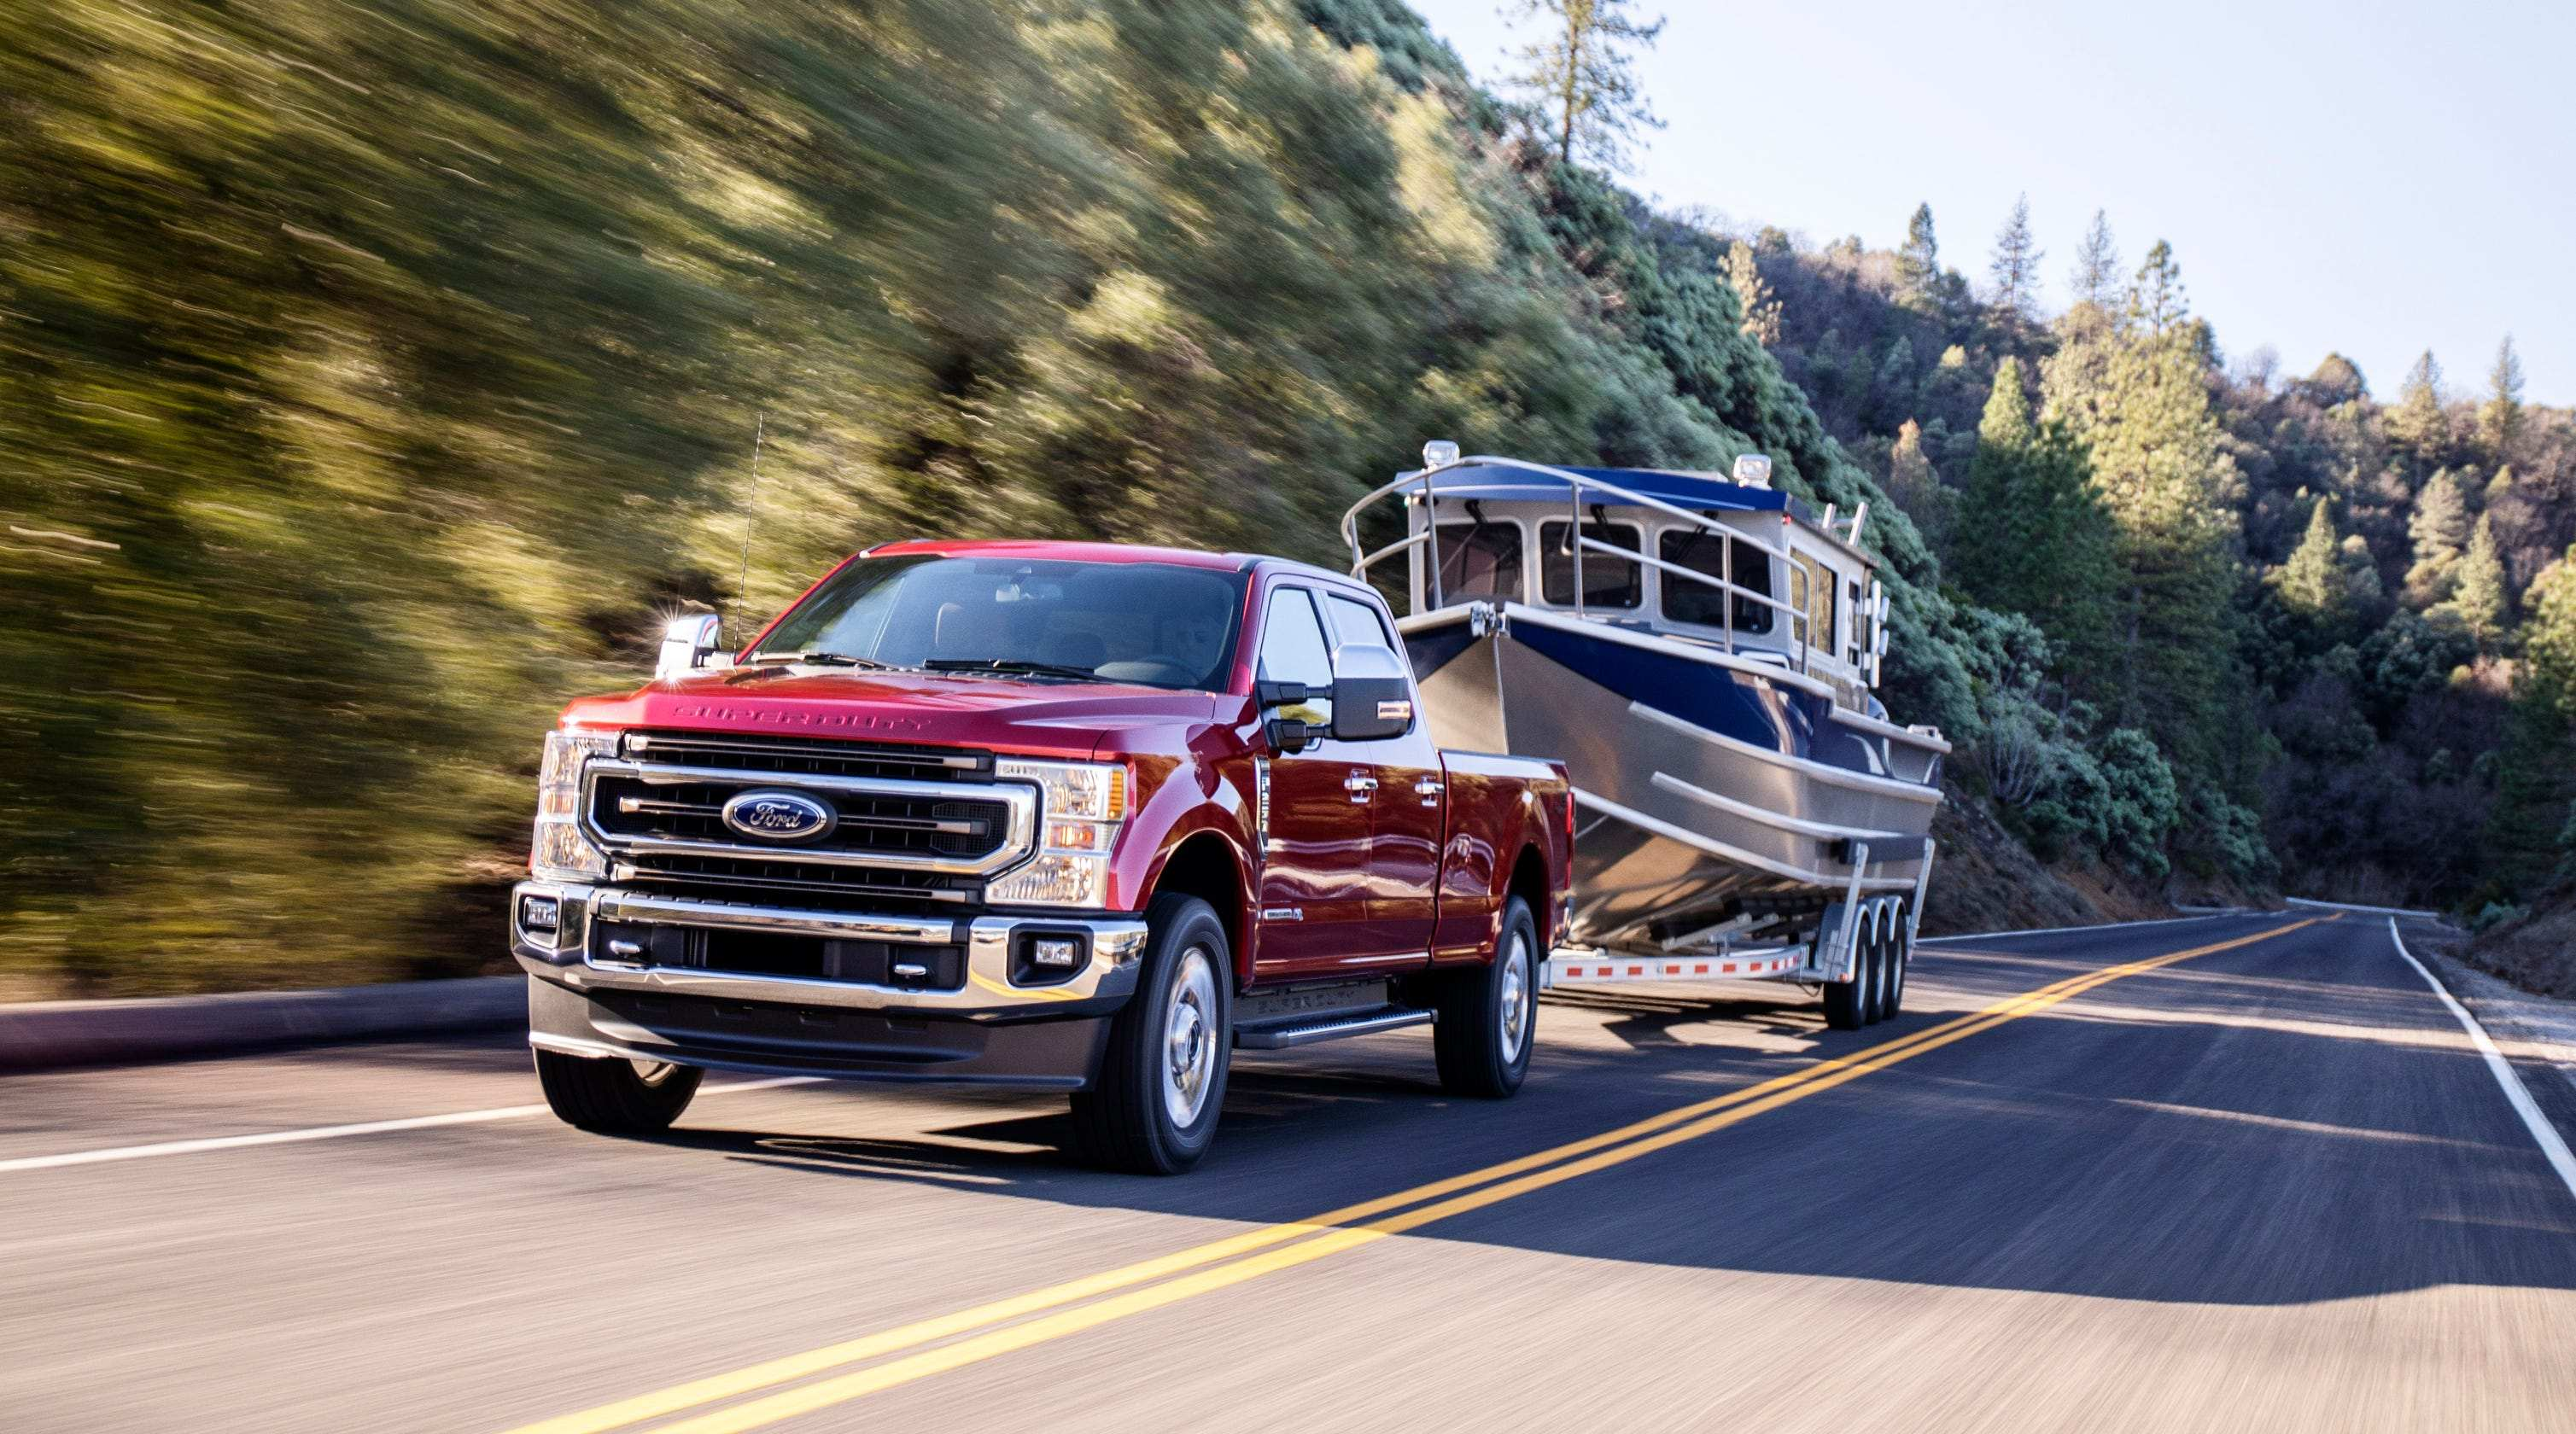 19 New 2020 Ford F450 Super Duty Release